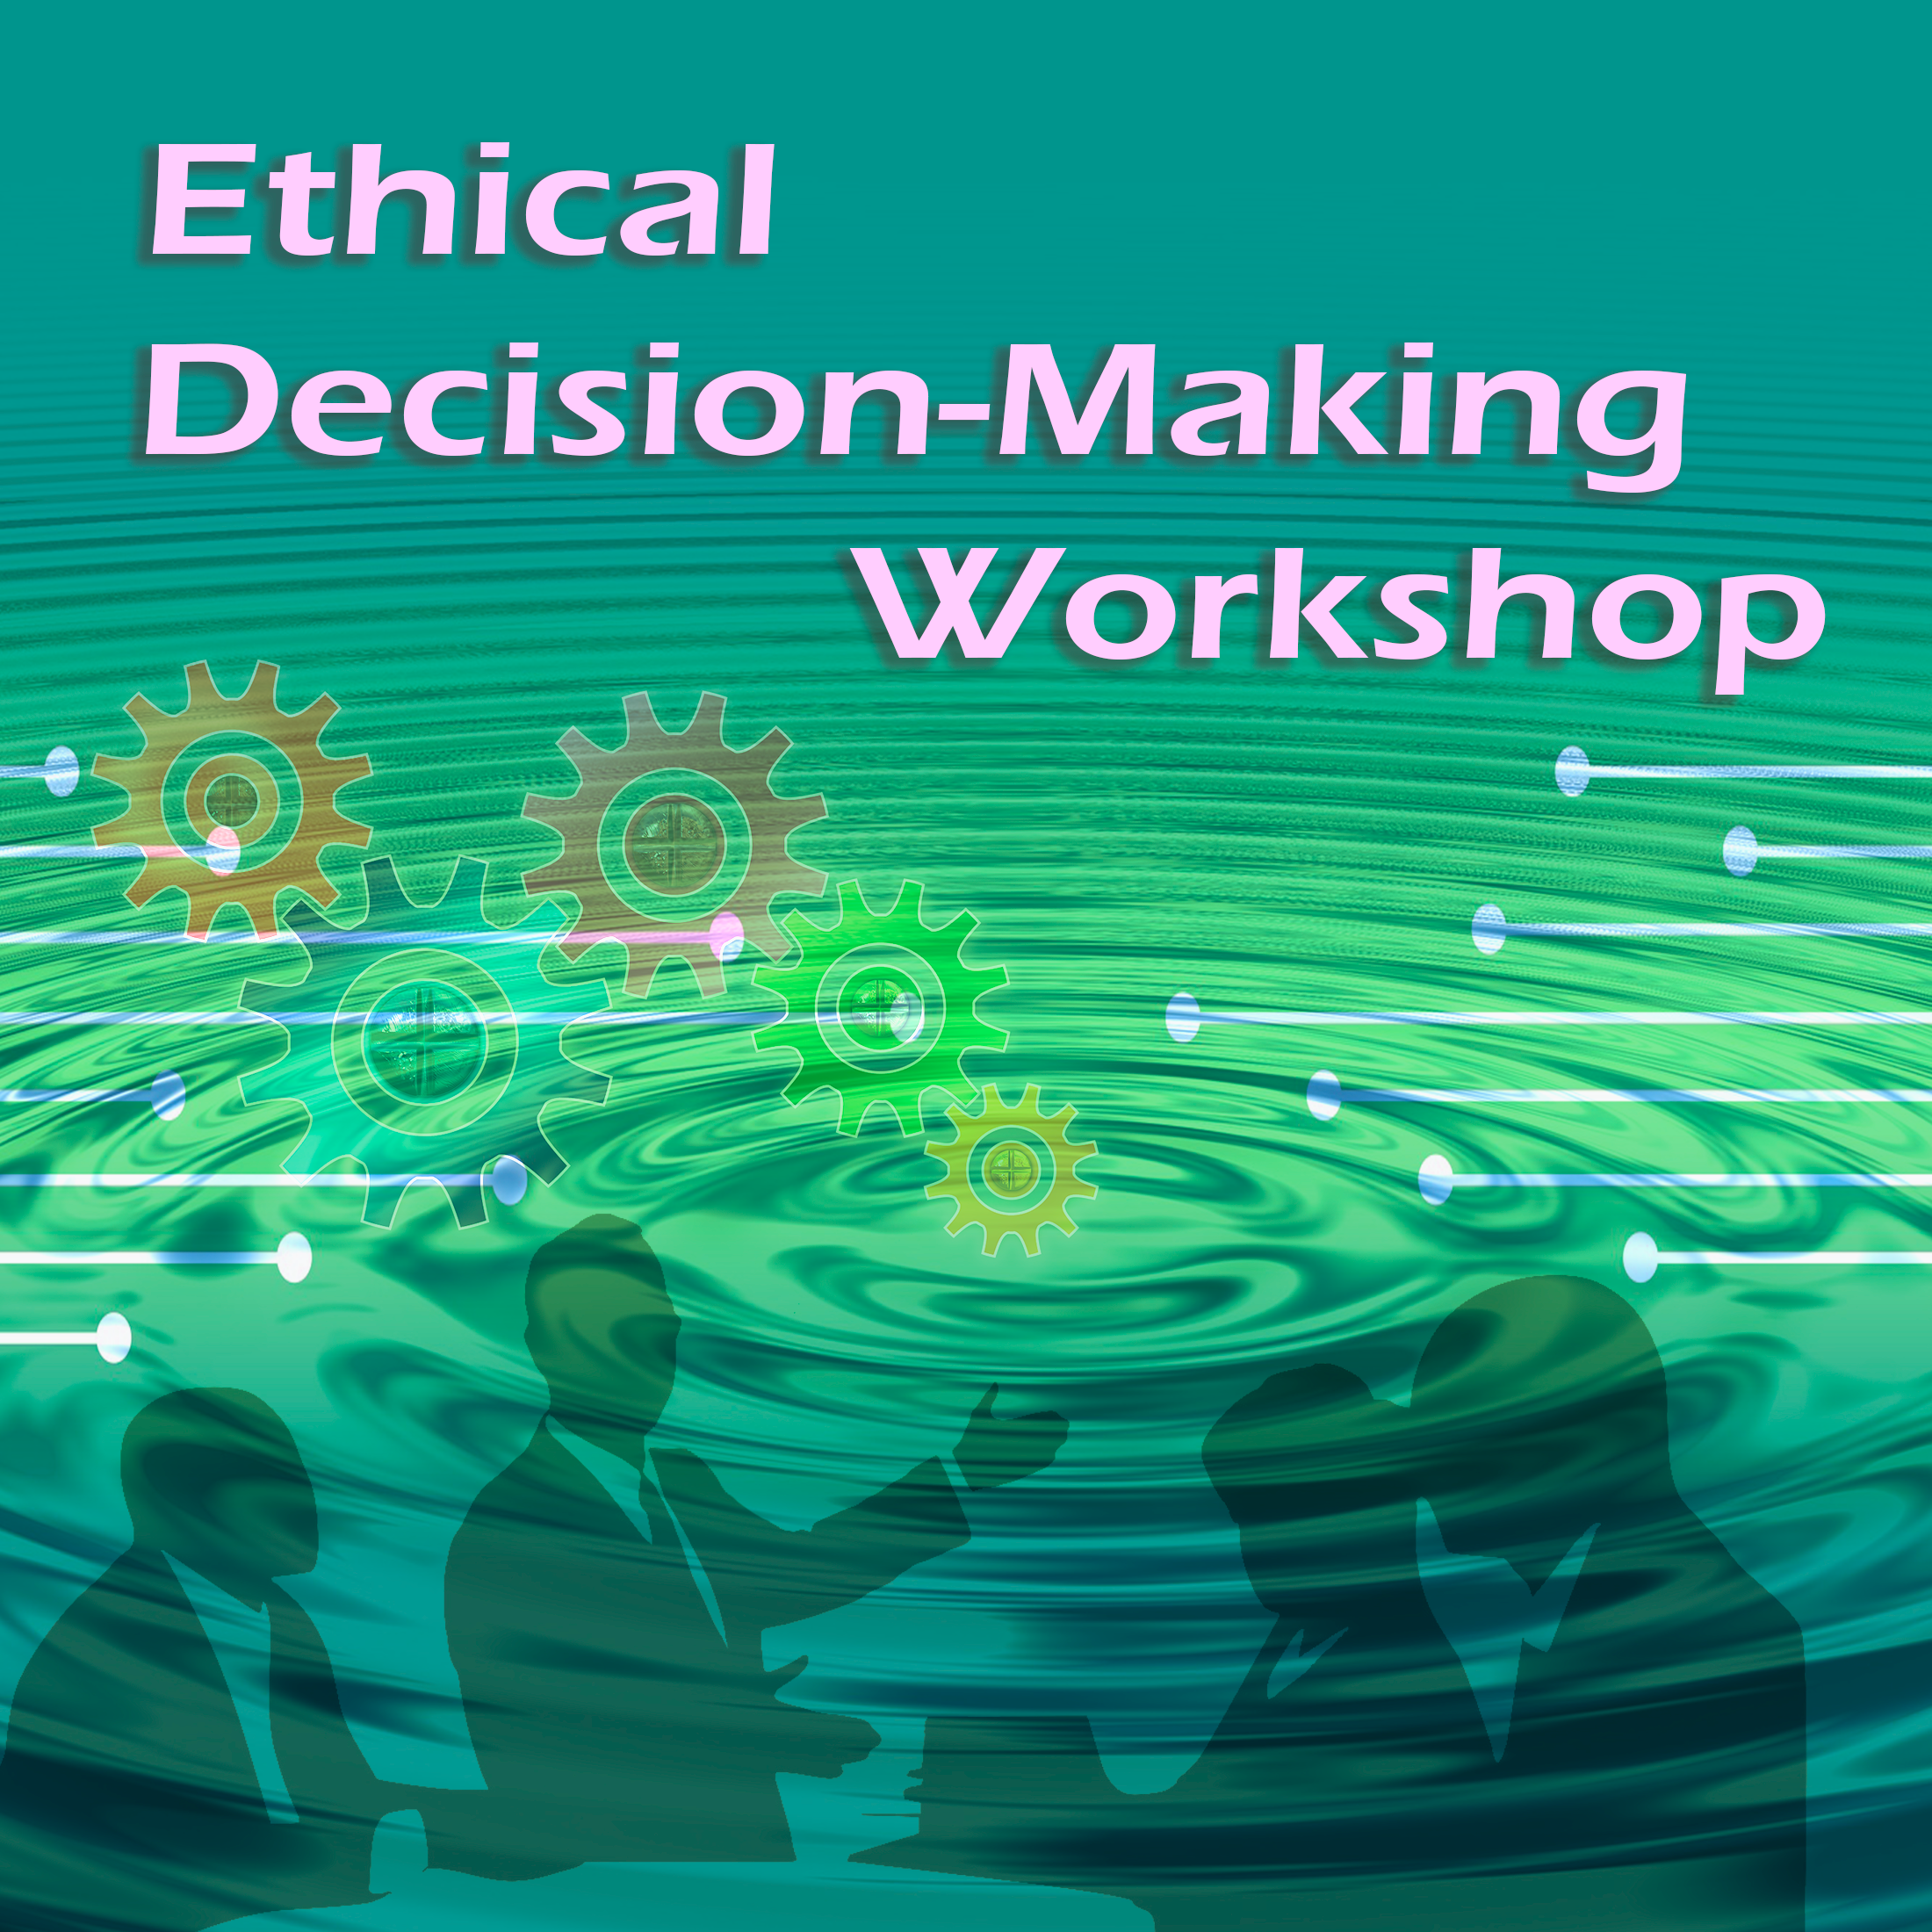 Ethical Decision-Making Workshop - Tyrastrategies